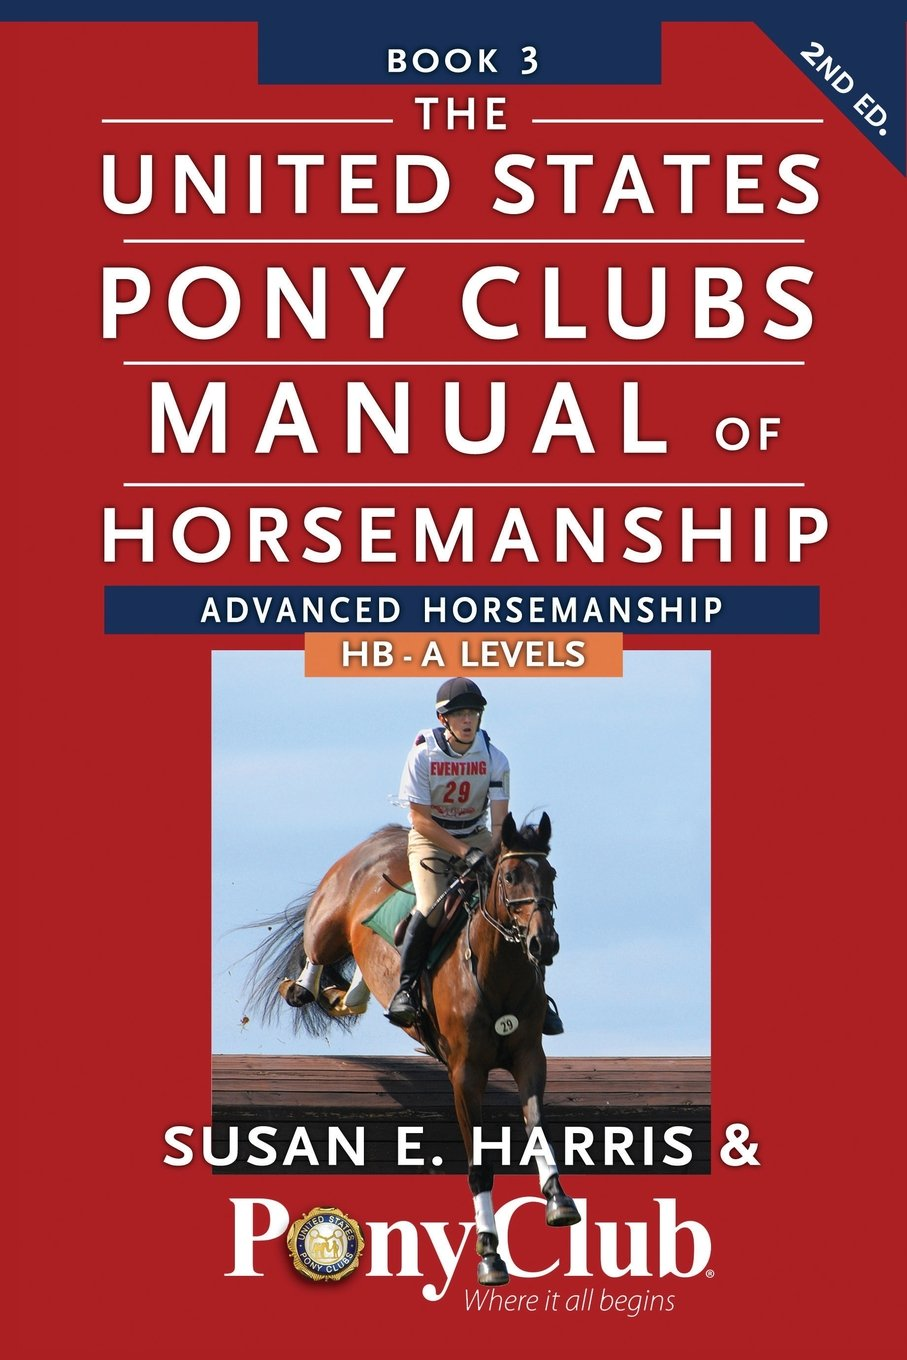 United States Pony Club Manual Book 3.jpg